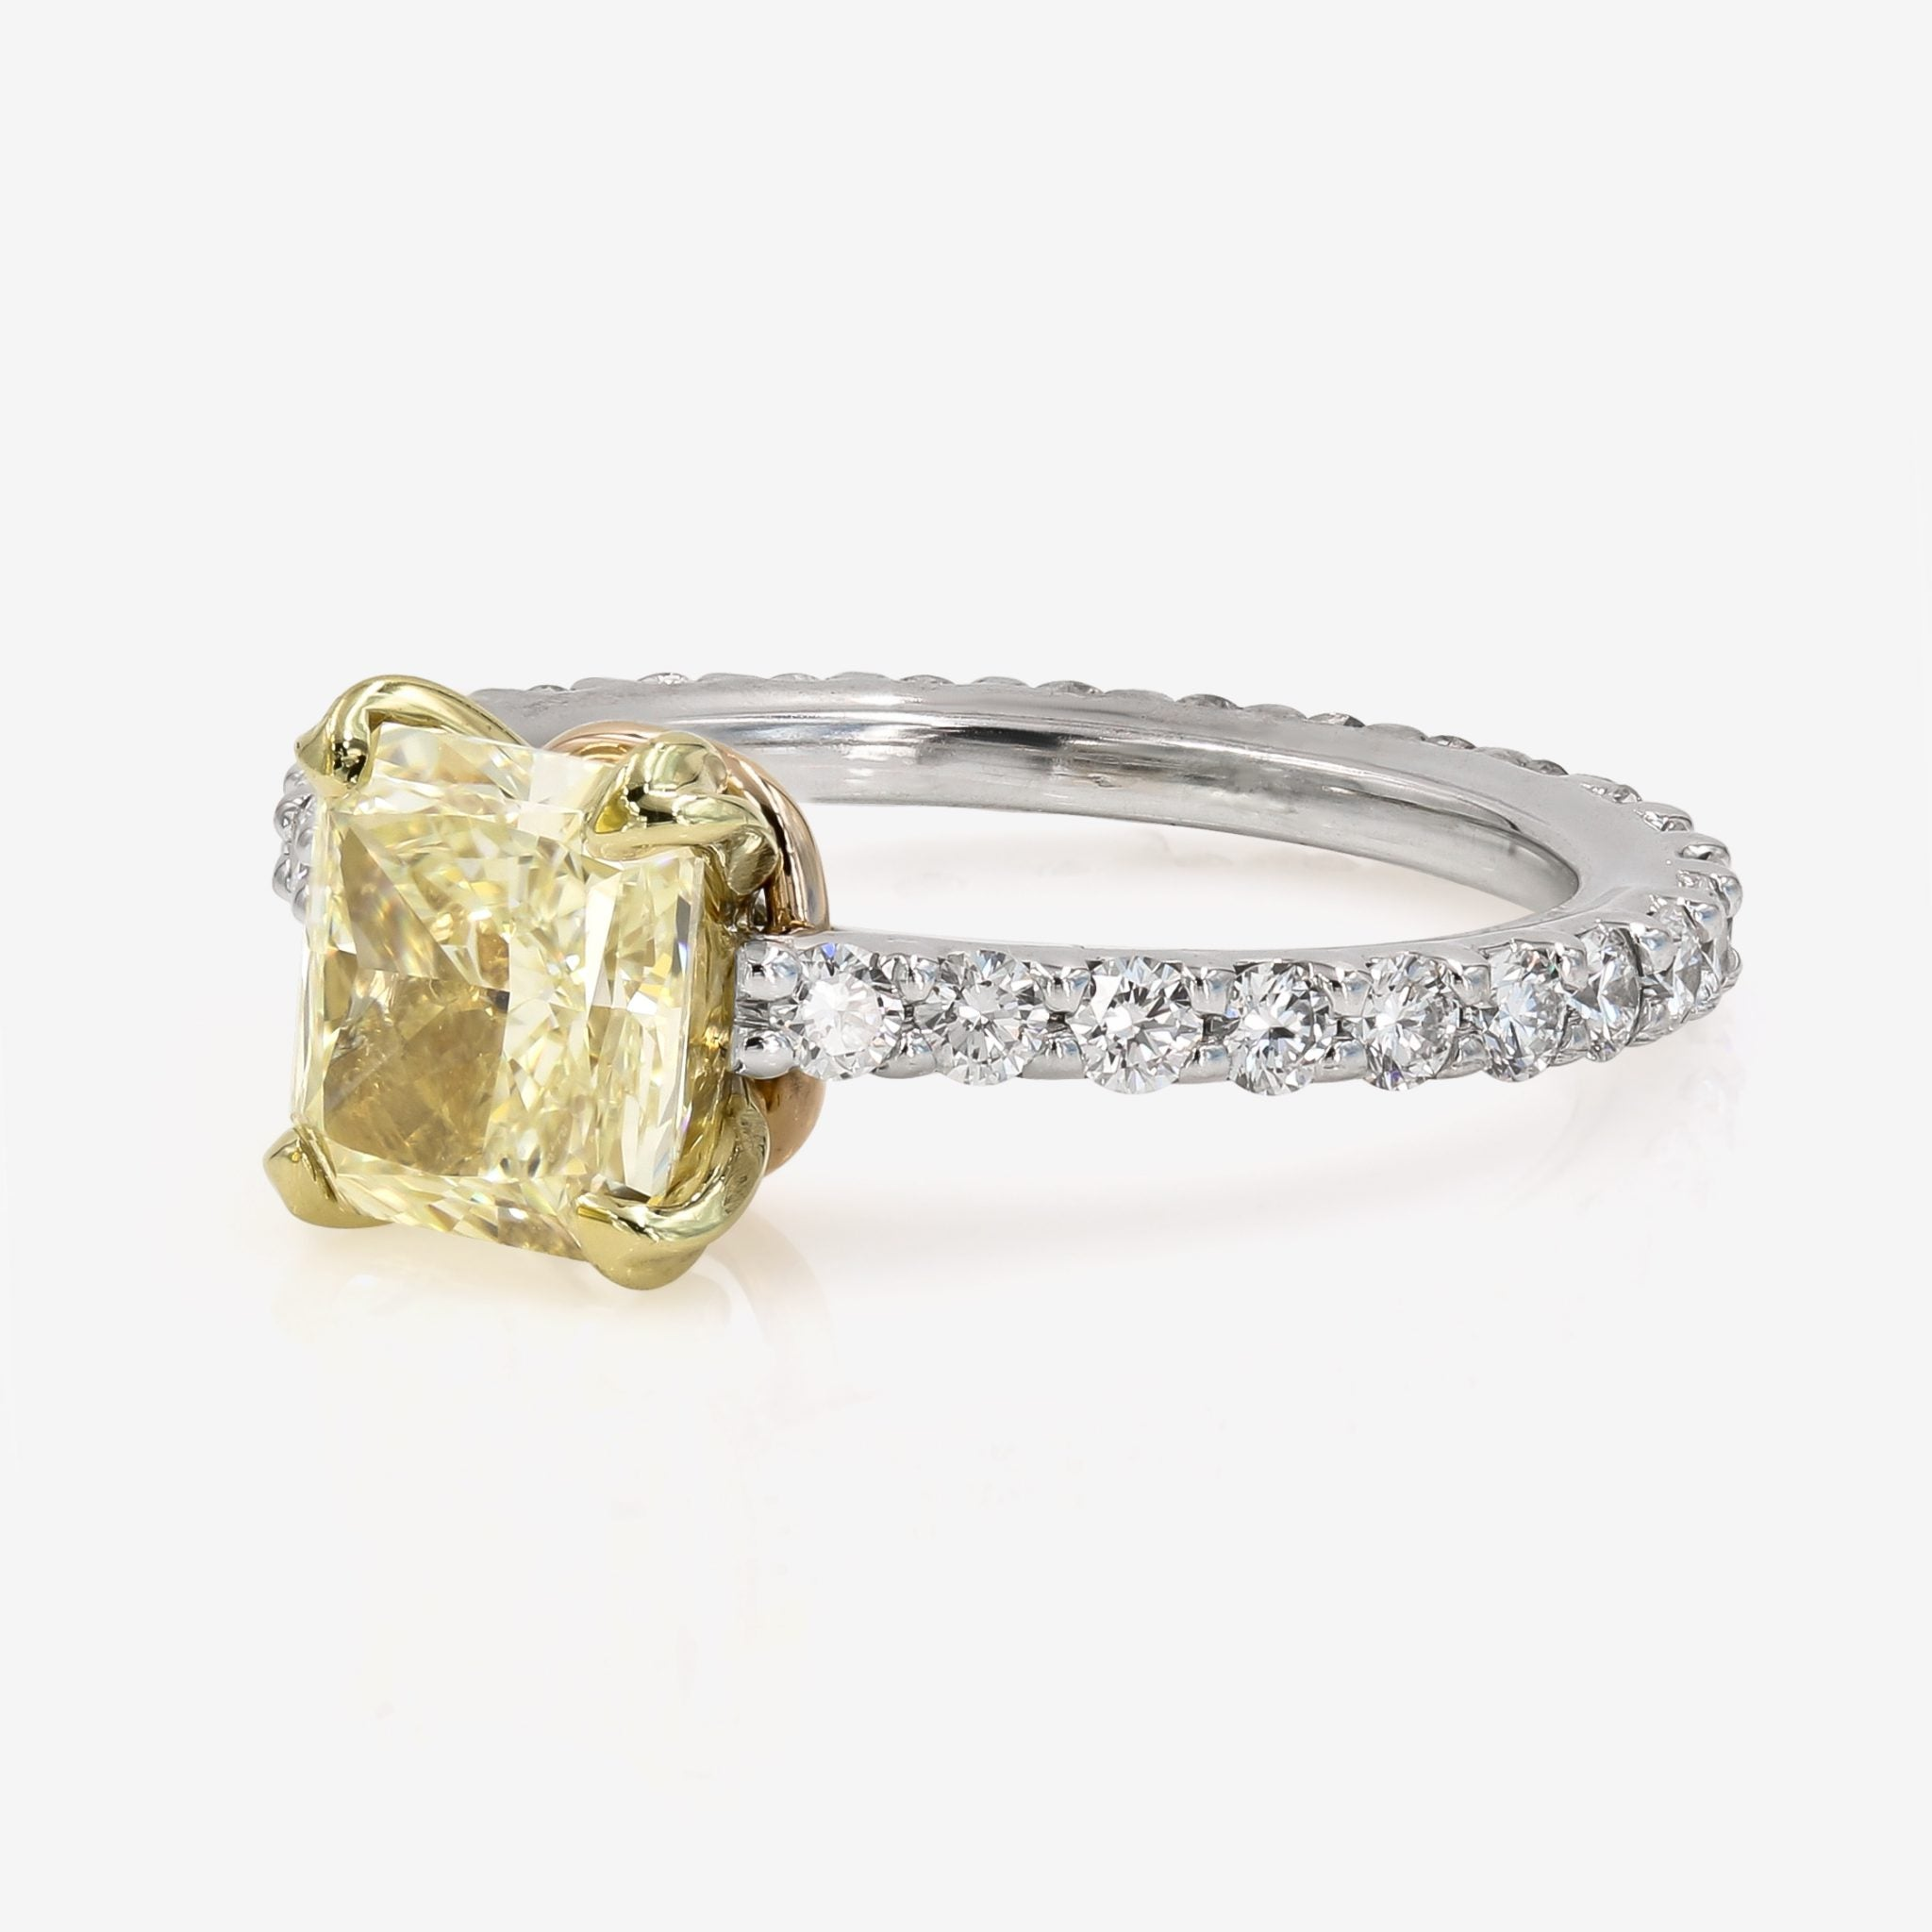 Image of Yellow Chardonnay Radiant Cut Diamond on Diamond Platinum Band Side Front